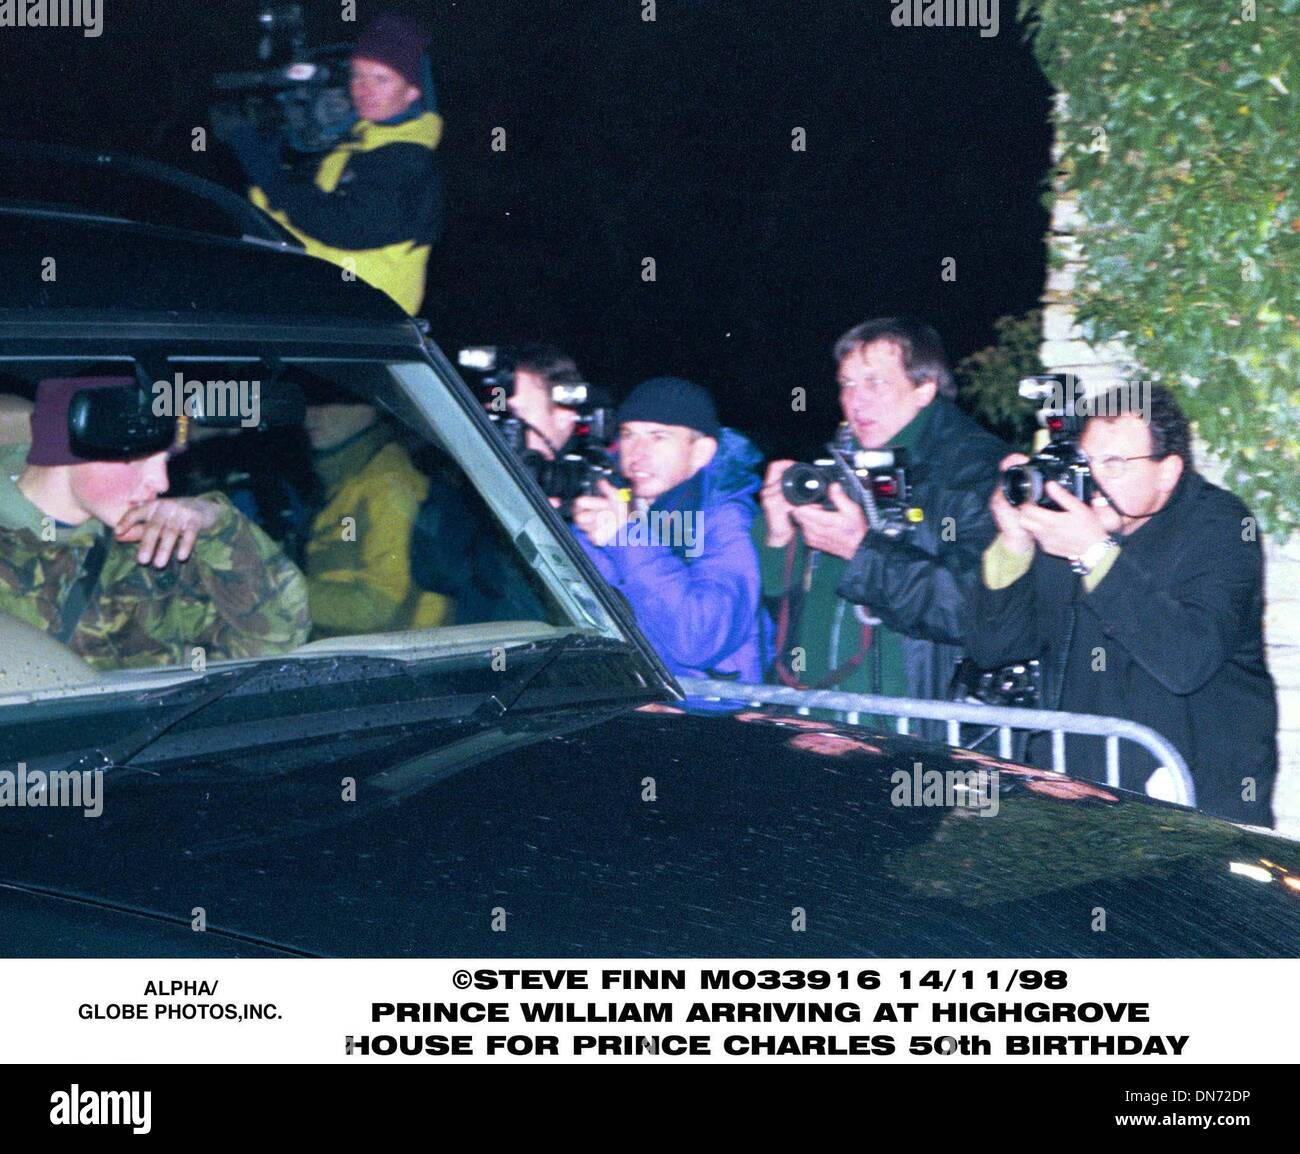 Nov. 13, 1998 - Great Britain - 14/11/98.PRINCE WILLIAM ARRIVING AT HIGHGROVE HOUSE .FOR PRINCE CHARLES 50th BIRTHDAY(Credit Stock Photo